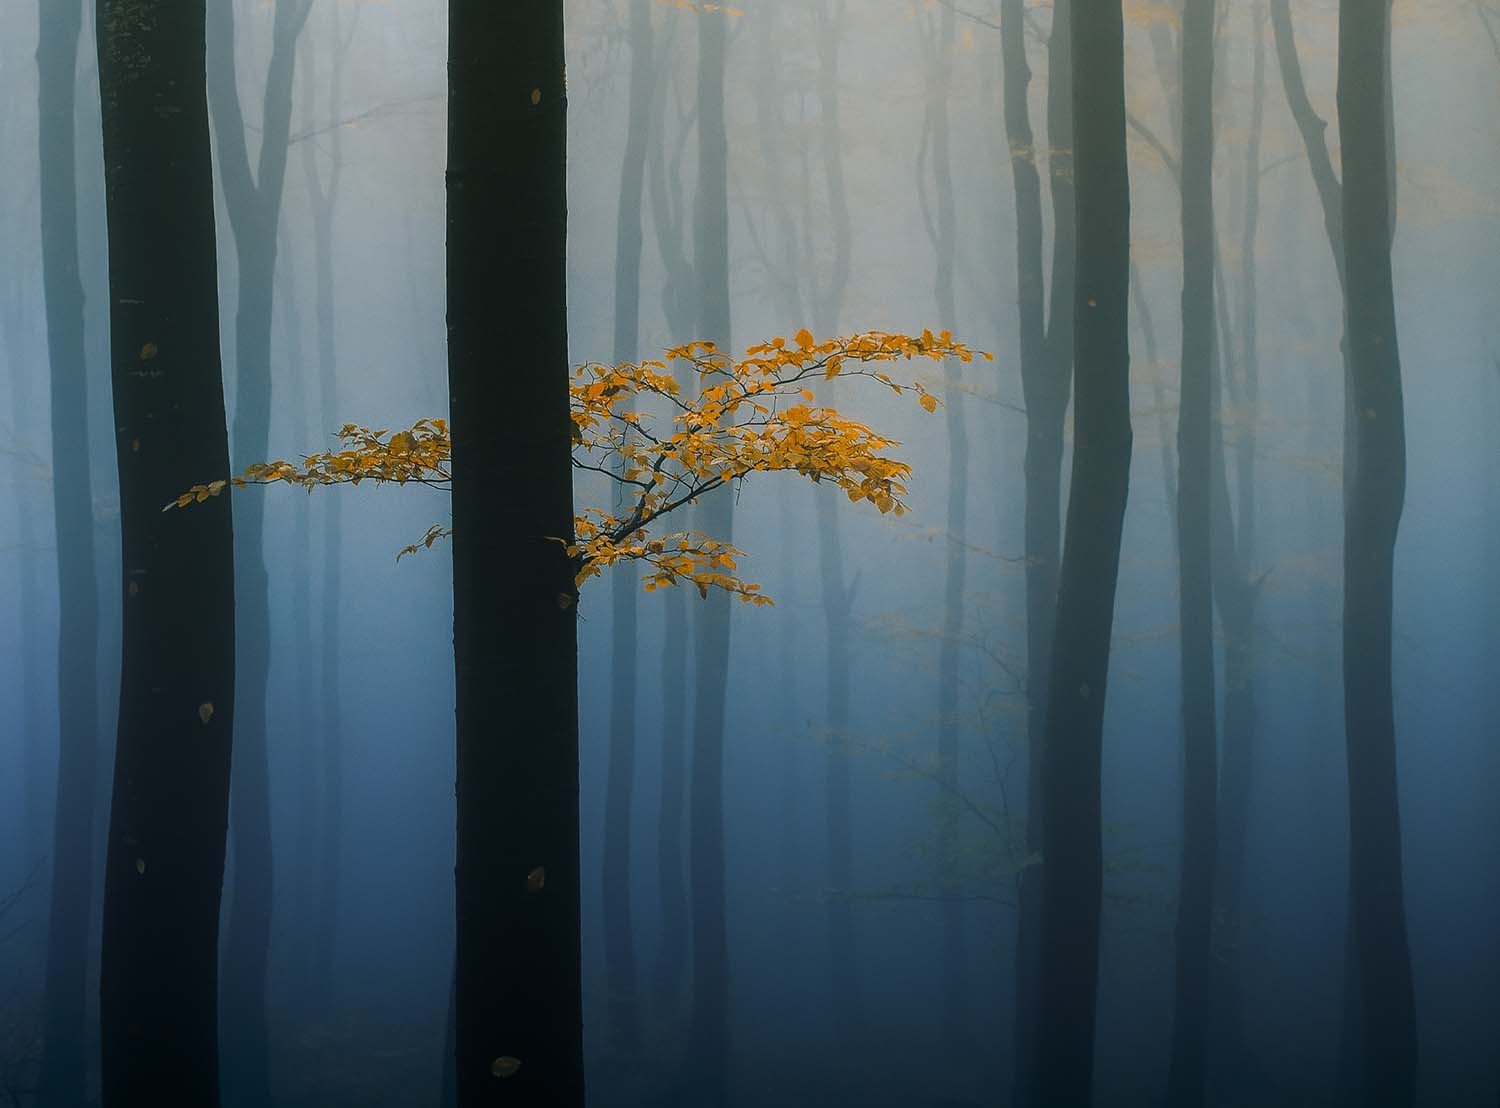 Magical photos show the enchantment of forests | World Photography Organisation